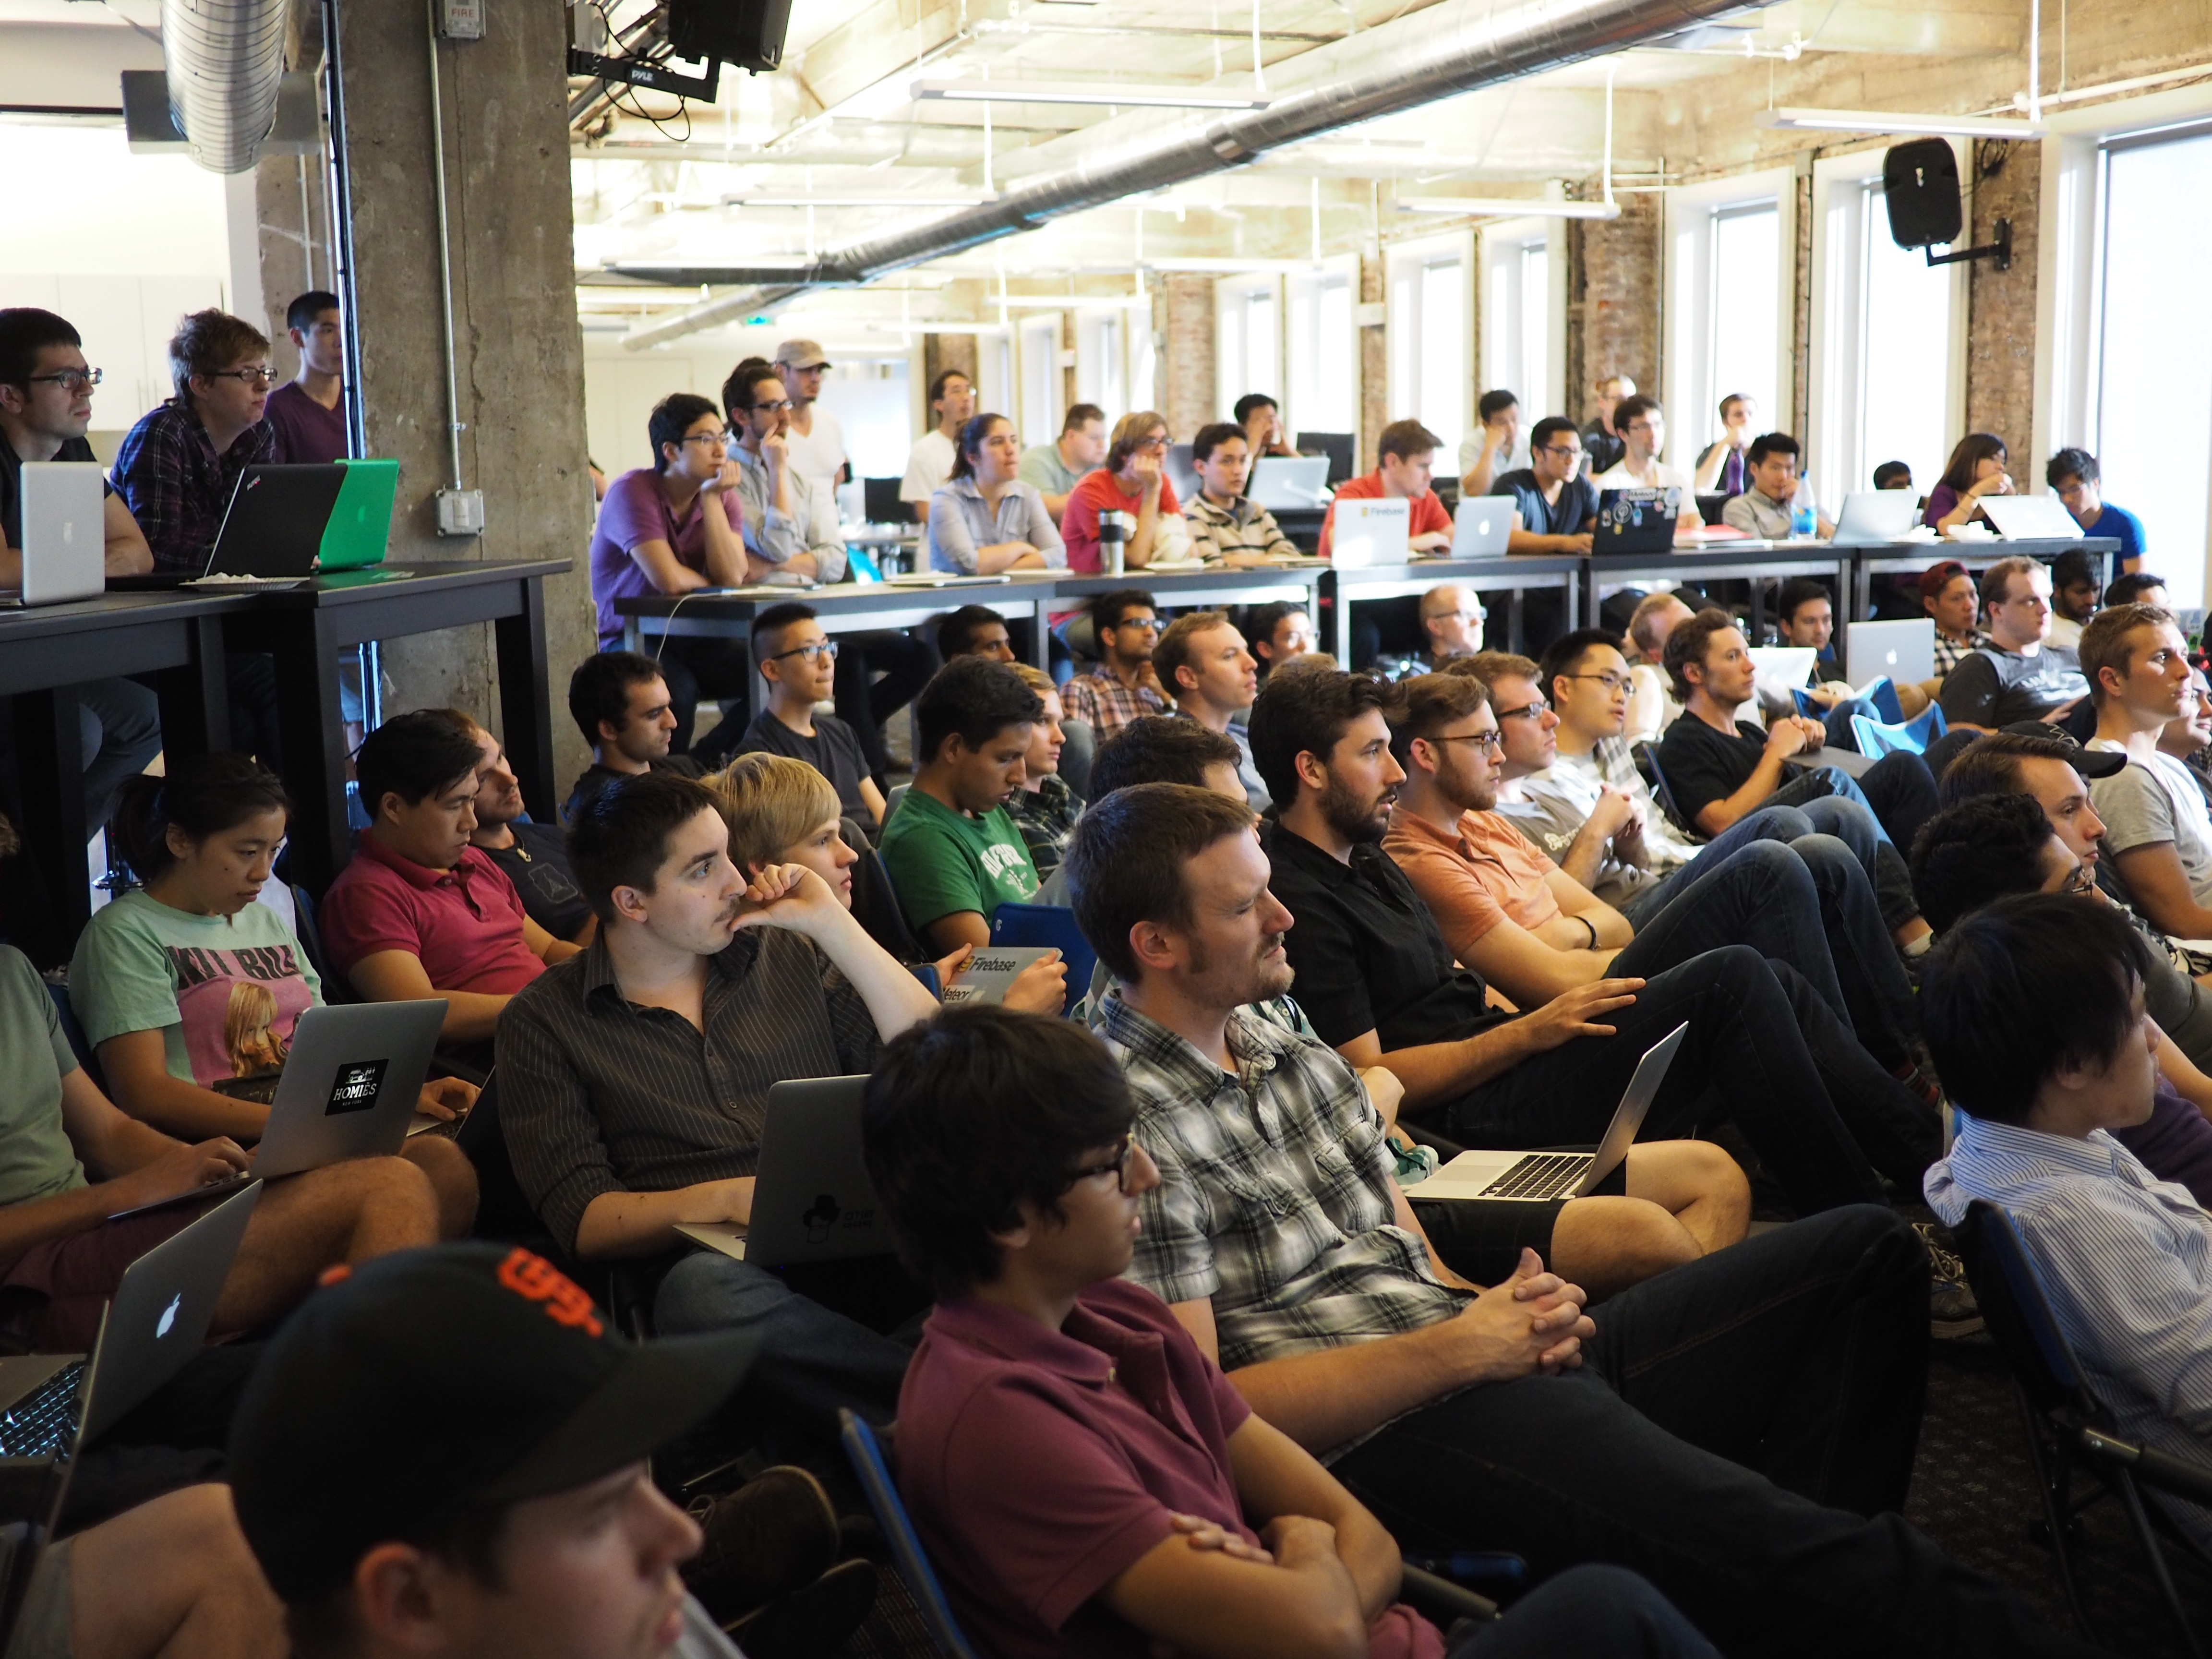 hack reactor, makersquare, coding school, accelerated learning program, programming bootcamp, coding bootcamp